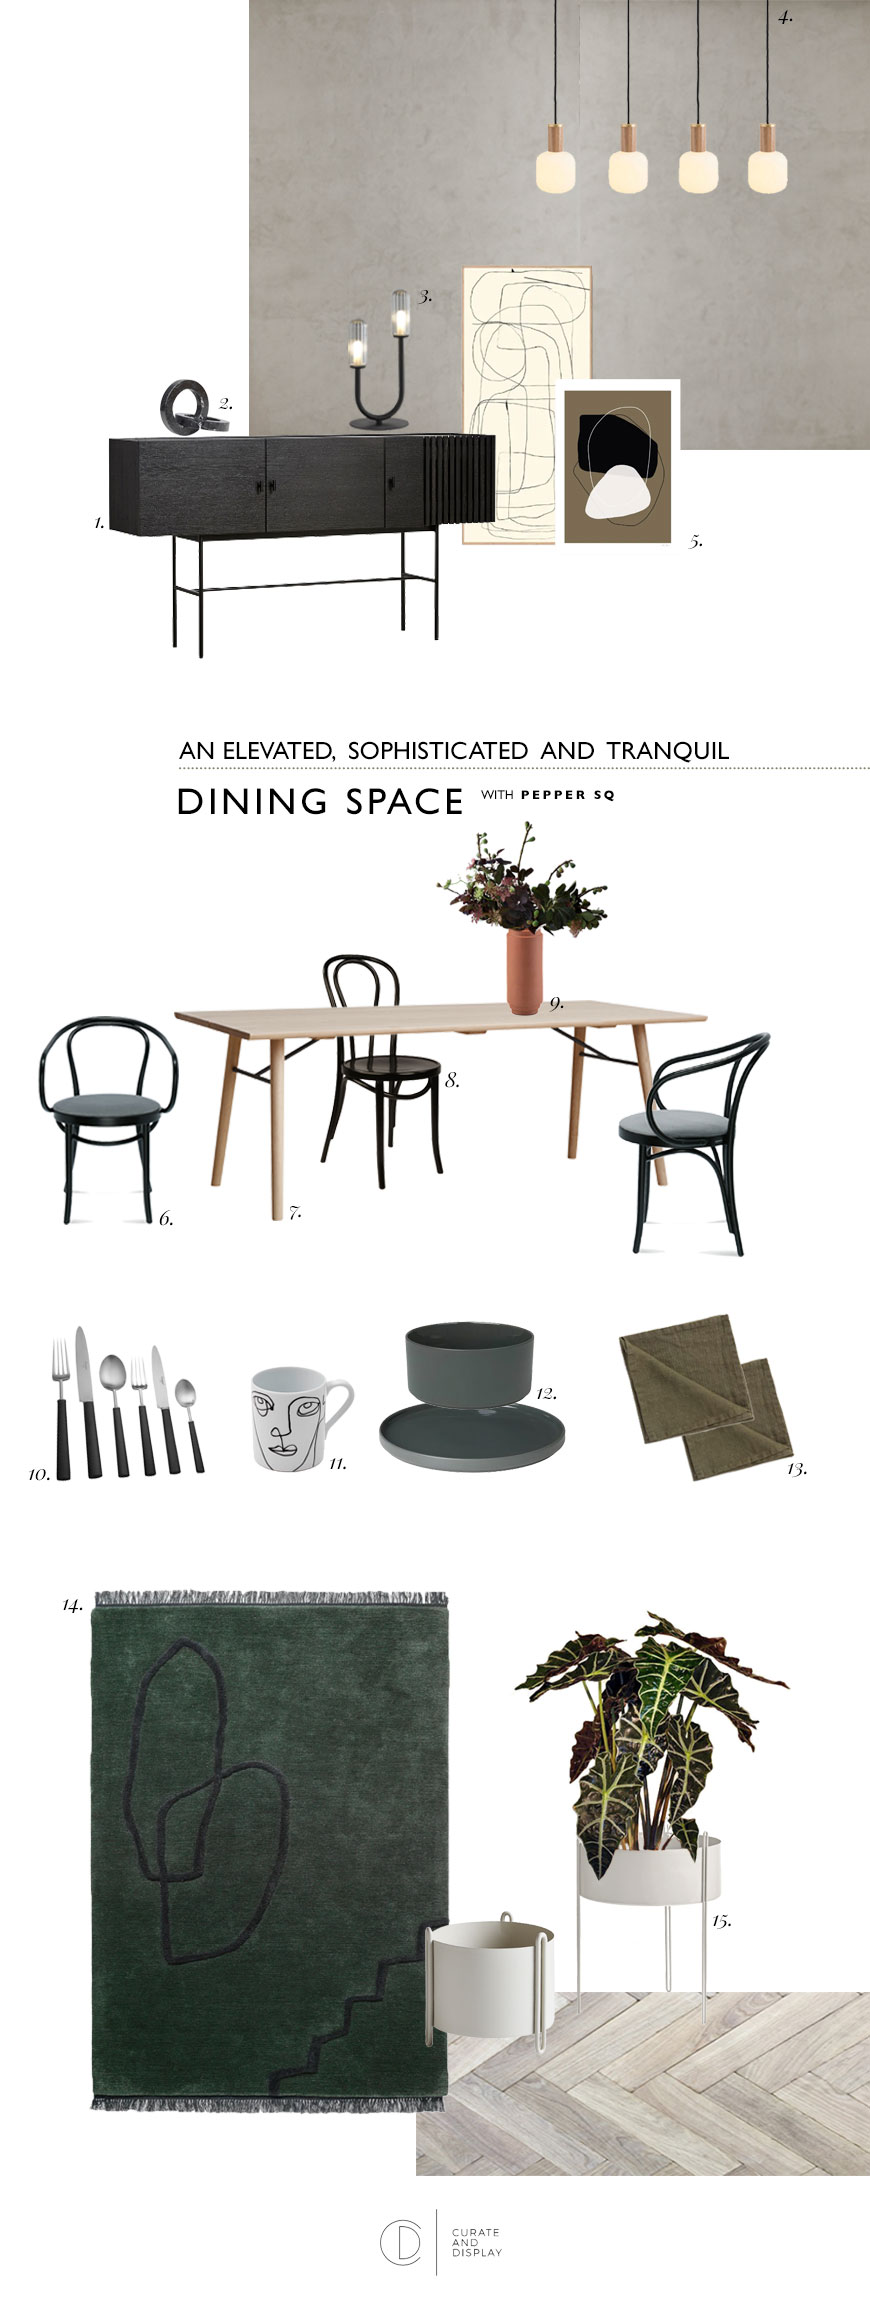 Pepper_Sq_Spacemaking_Dining_Room_Design-1